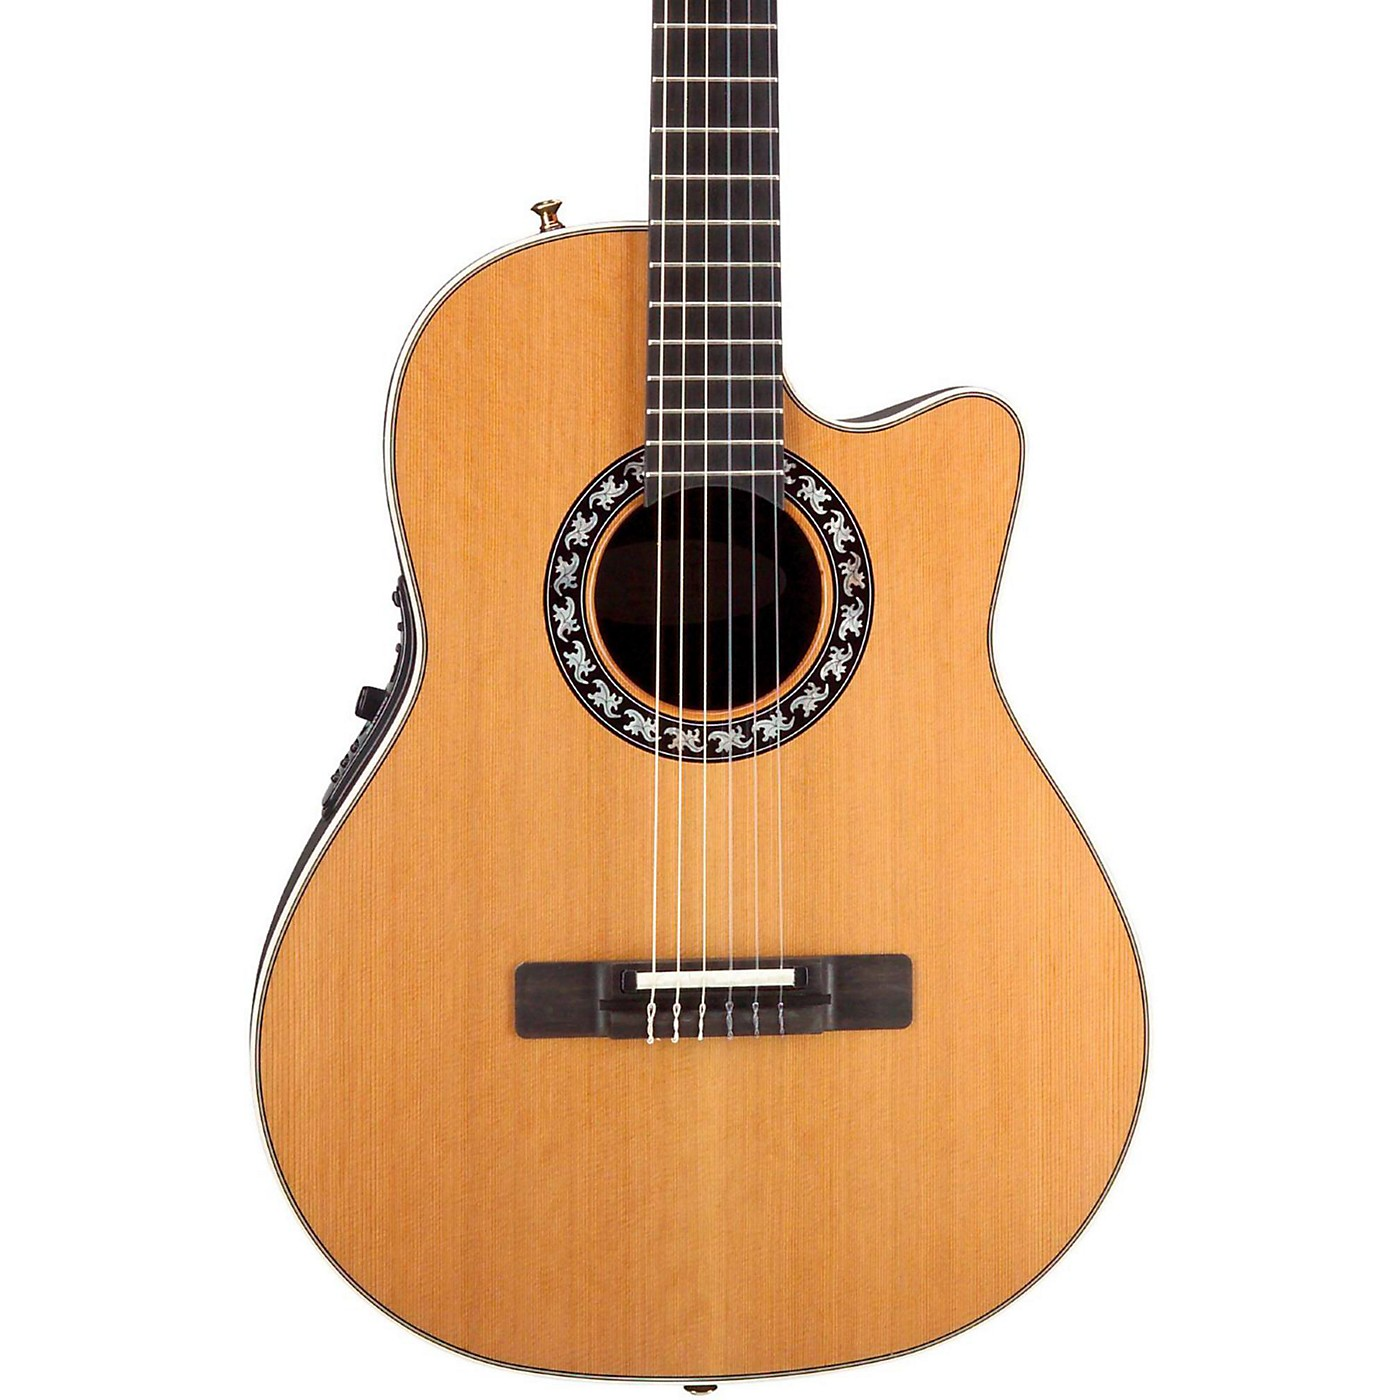 Ovation Timeless Legend Nylon String Acoustic-Electric Guitar thumbnail